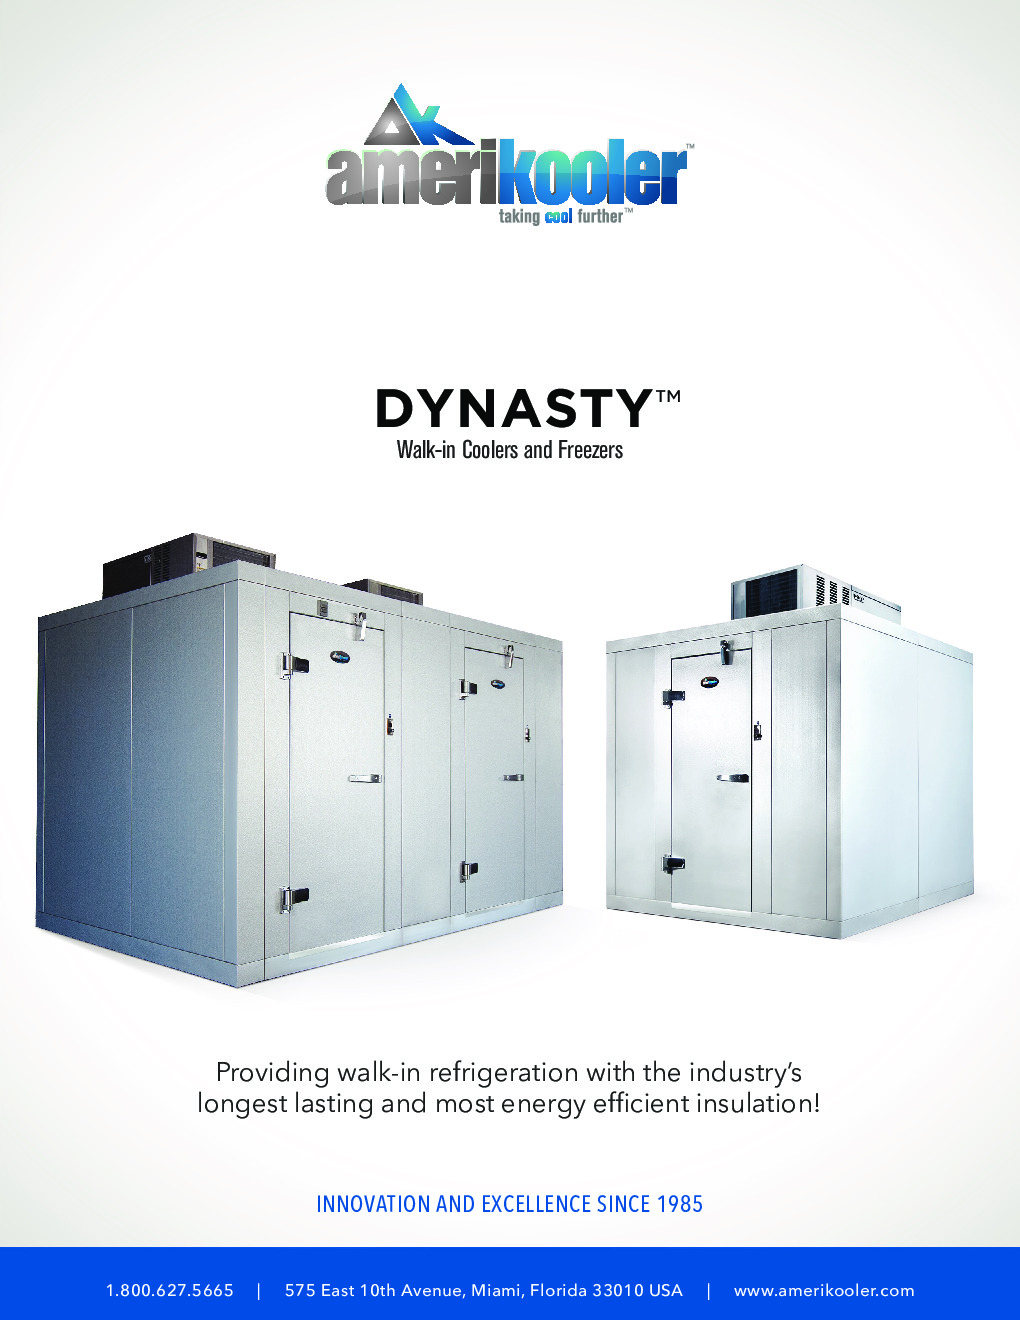 AmeriKooler DW091177F-4/7 Indoor 9' X 11' Walk-In, 7' L Cooler with Floor and 4' L Freezer, Box Only